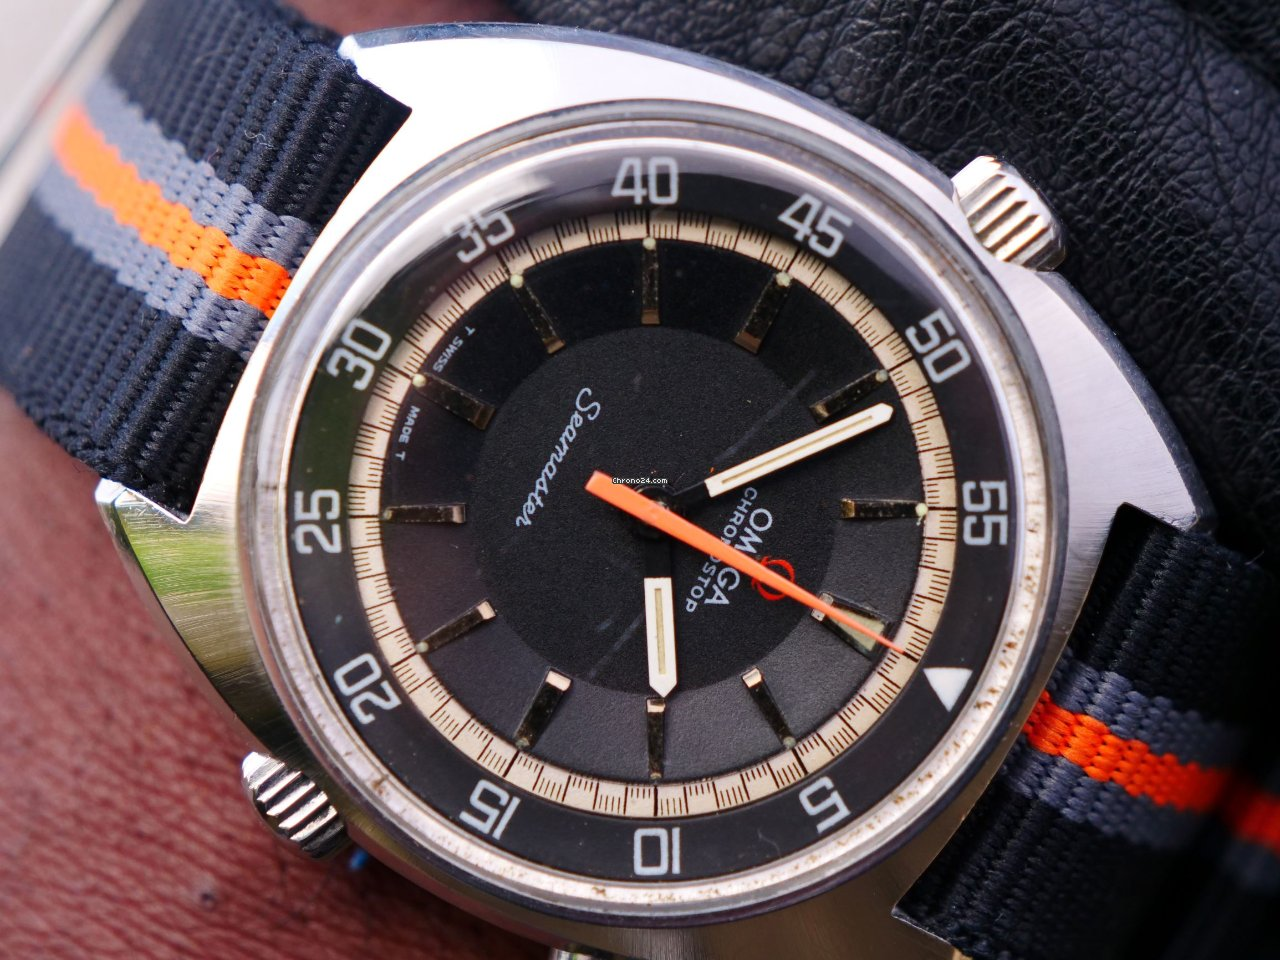 Omega Seamaster Diver 300 M 145.008 1969 pre-owned